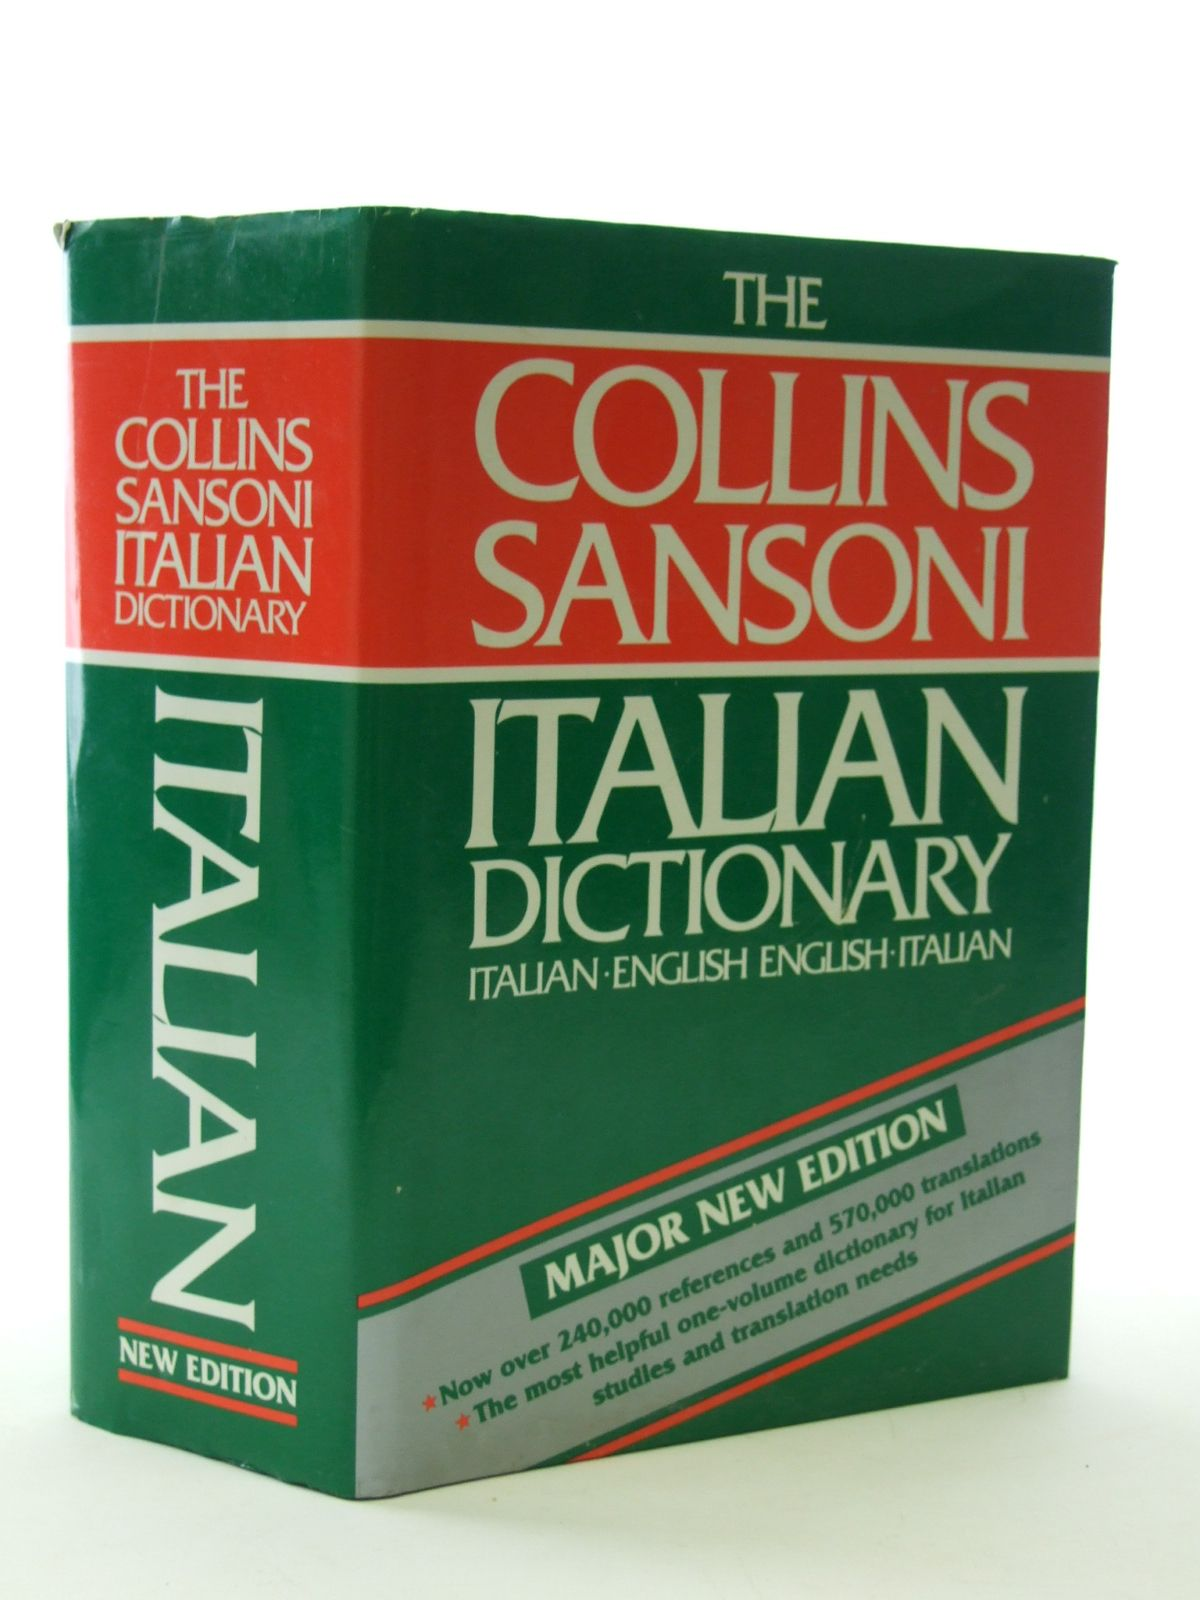 THE COLLINS SANSONI ITALIAN DICTIONARY, STOCK CODE: 1603219 : Stella